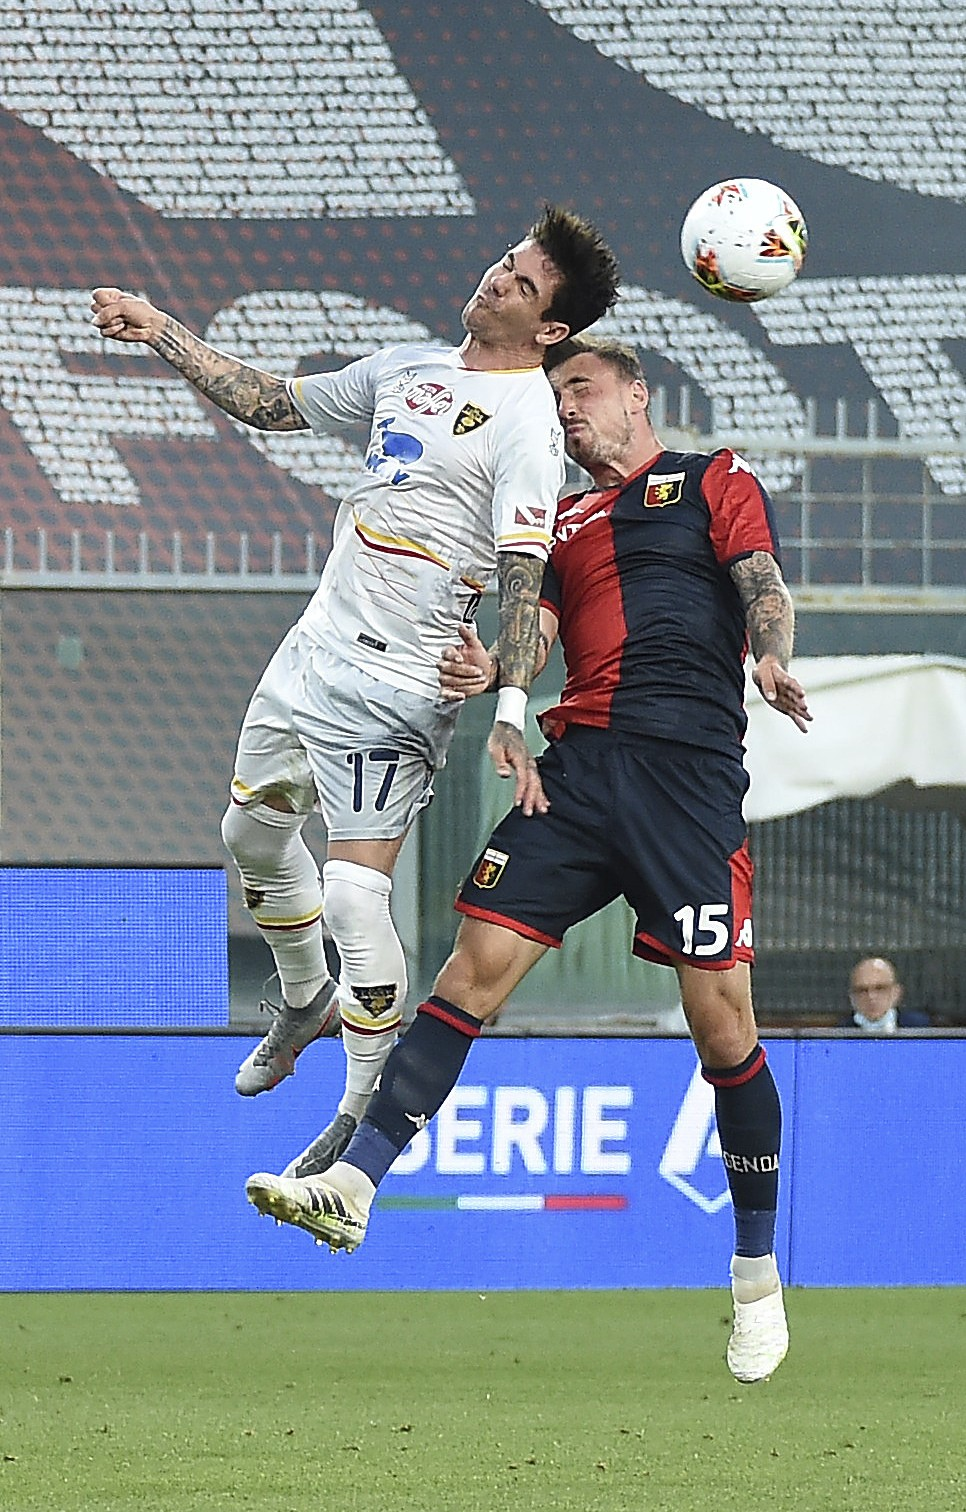 jagello filip of Lecce in action with Genoa's diego farias during the Serie A soccer match between Genoa and Lecce, at the Luigi Ferraris Stadium in G...